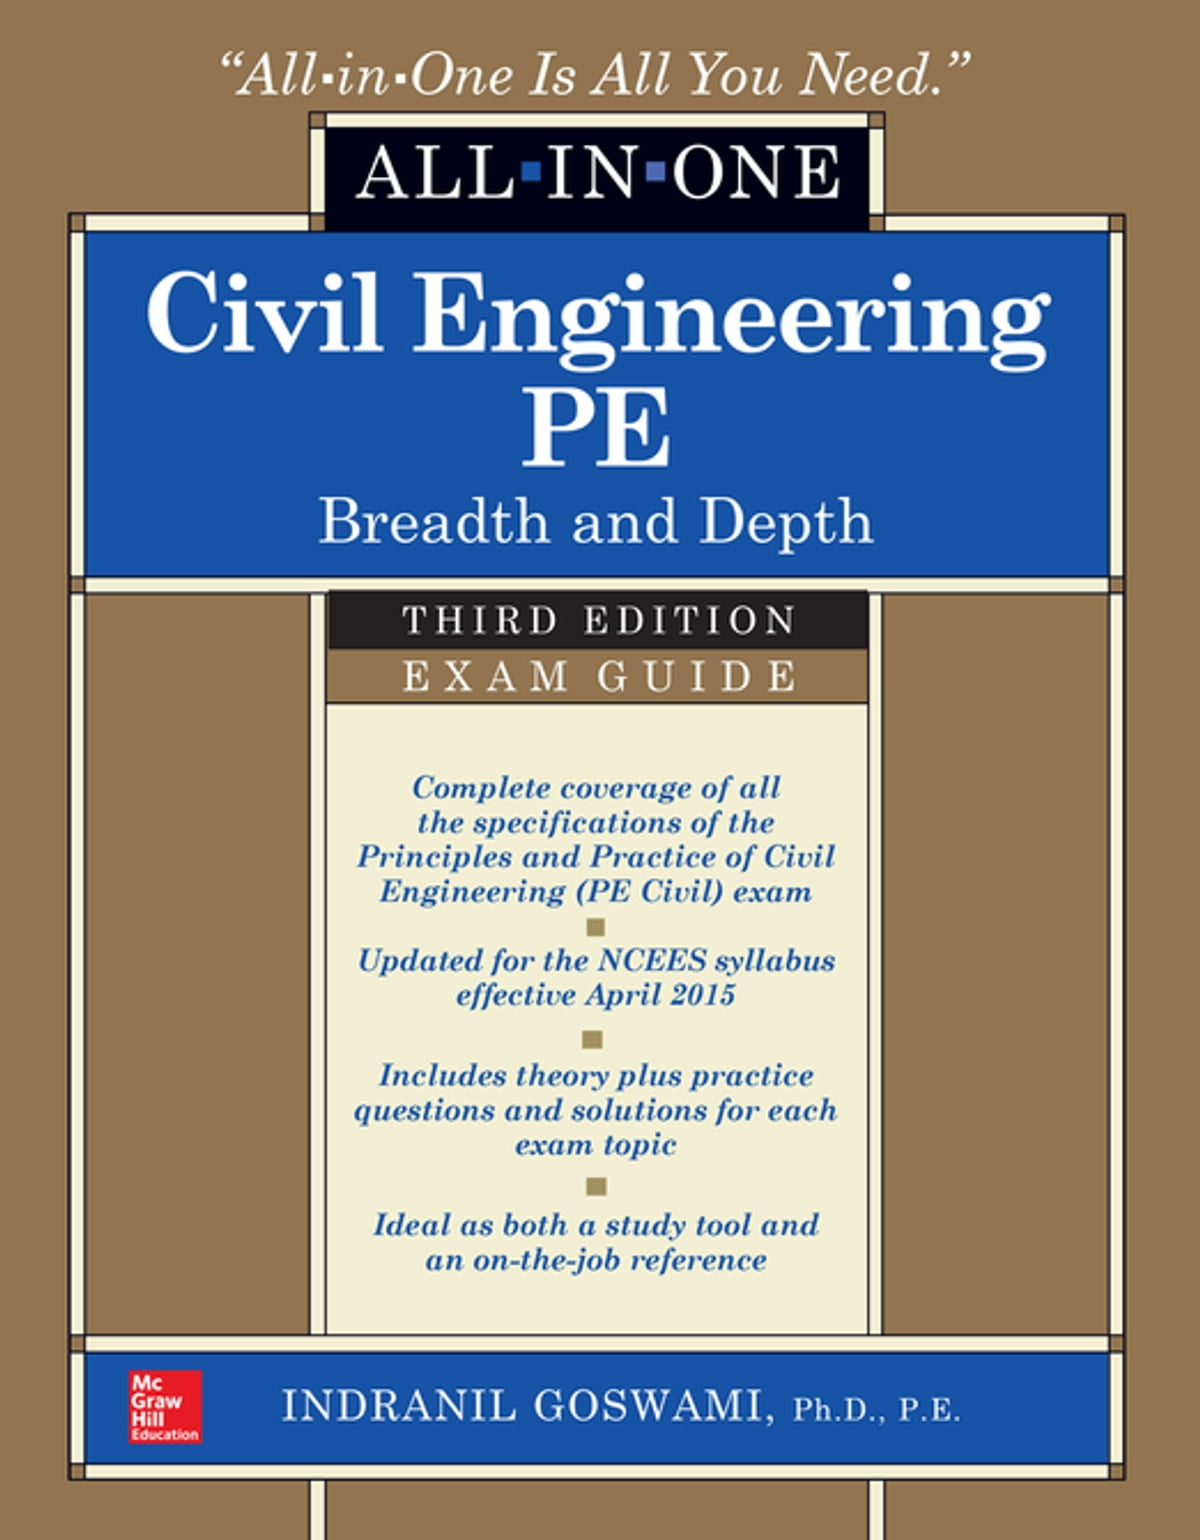 Civil Engineering All-In-One PE Exam Guide: Breadth and Depth, Third  Edition eBook by Indranil Goswami - 9780071825511 | Rakuten Kobo